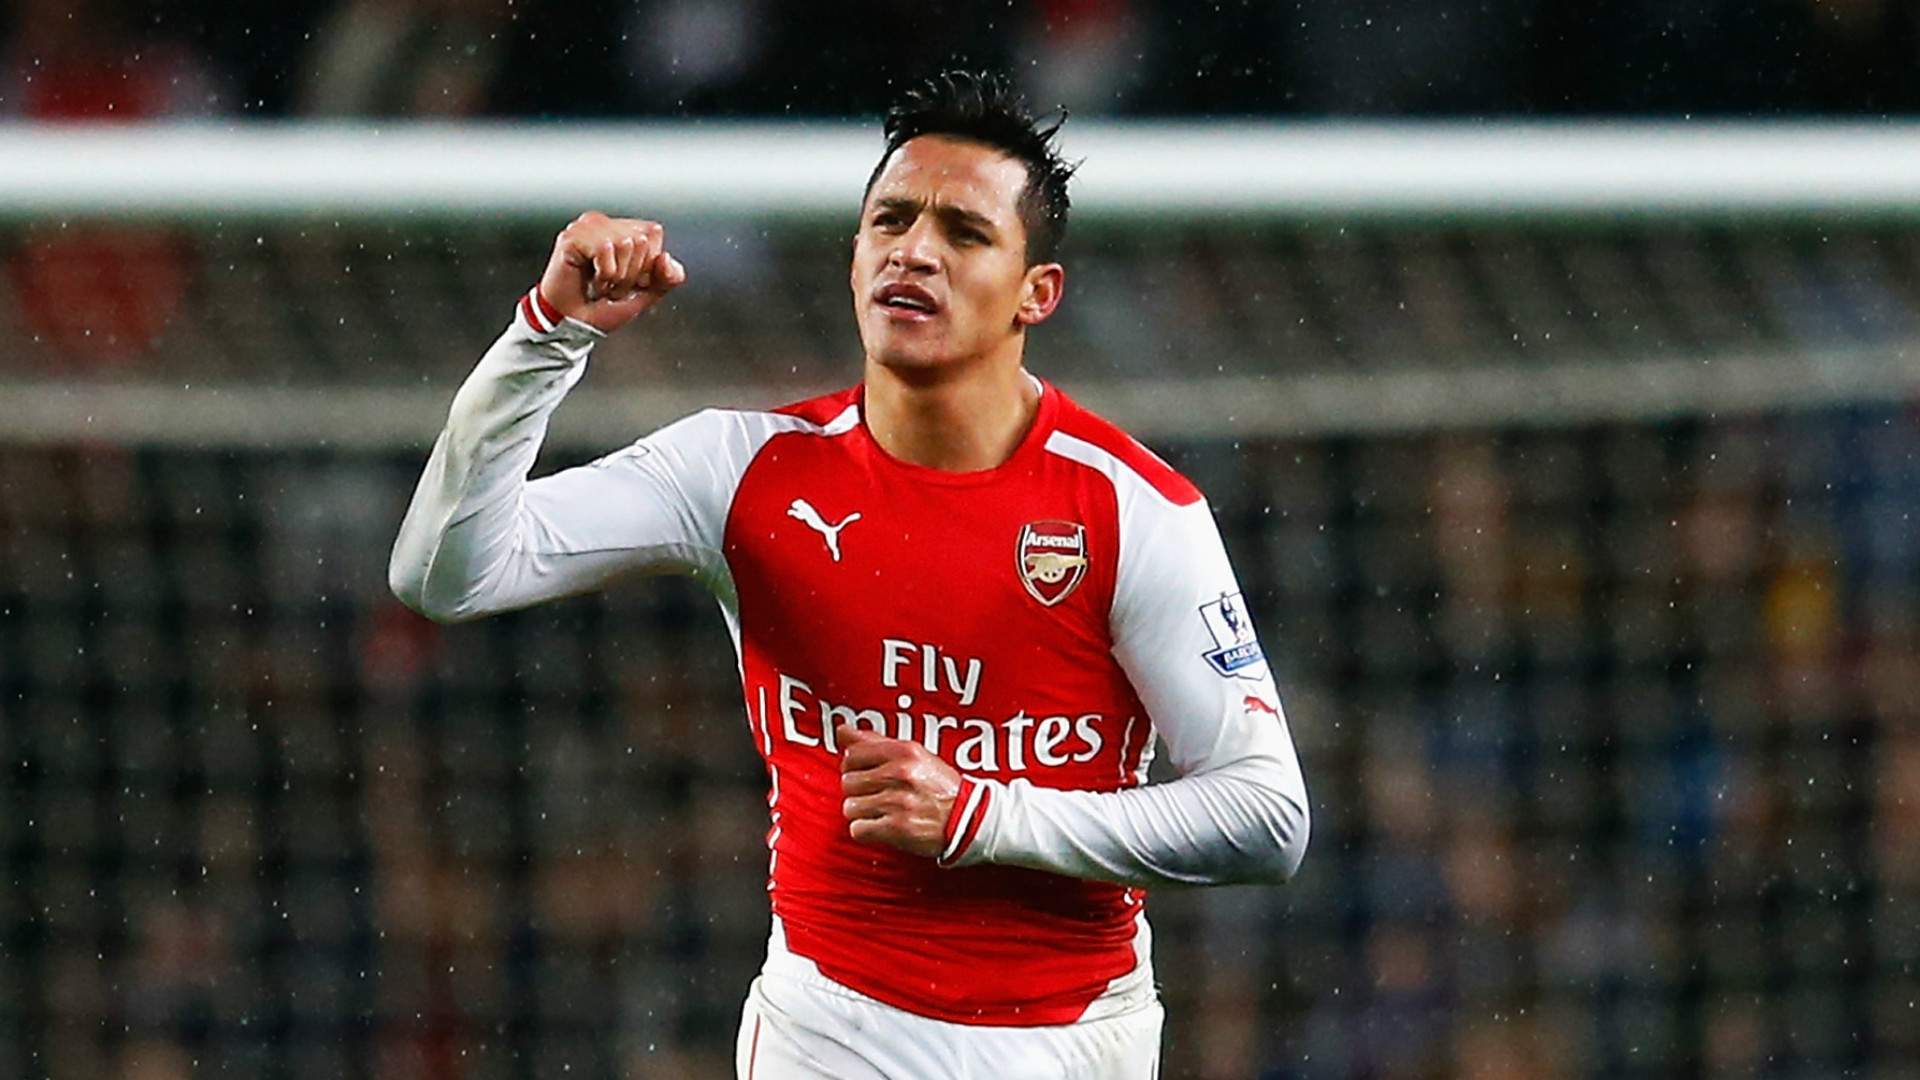 alexis sanchez Alexis alejandro sánchez sánchez (spanish pronunciation: [aˈleksis ˈsantʃes] born 19 december 1988), also known simply as alexis, is a chilean professional footballer who plays as a forward for english club manchester united and the chile national team.